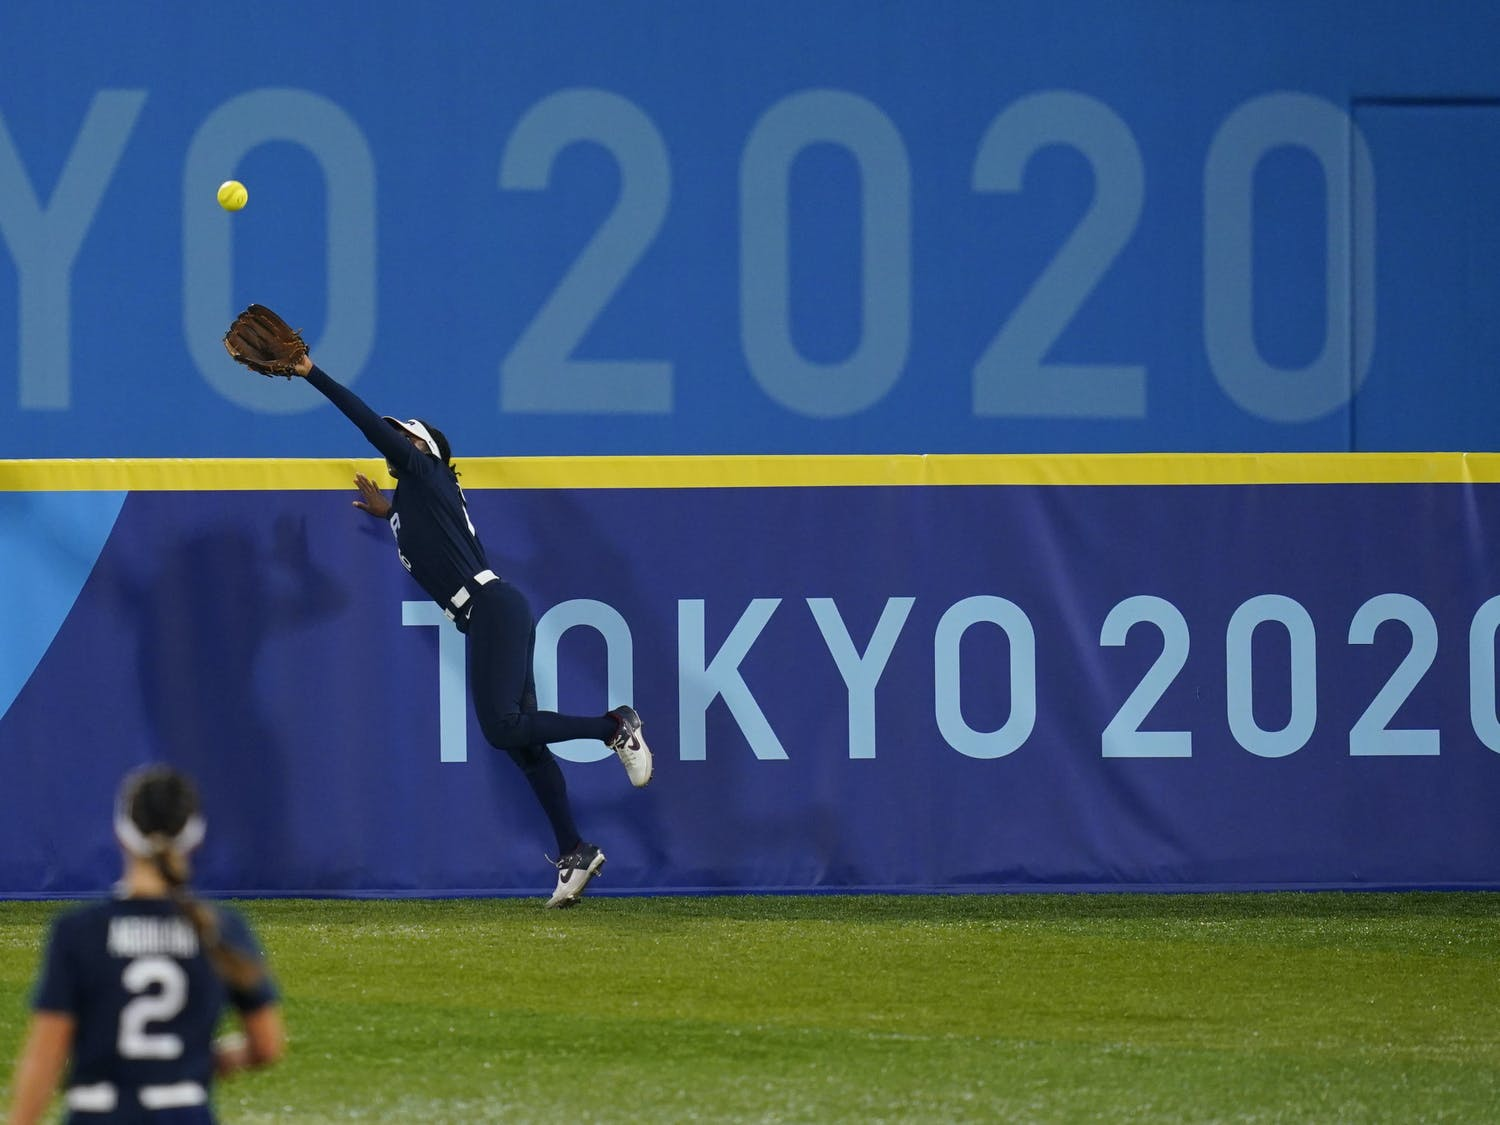 United States' Michelle Moultrie catches a fly out during a softball game against Japan at the 2020 Summer Olympics, Tuesday, July 27, 2021, in Yokohama, Japan. (AP Photo/Matt Slocum)